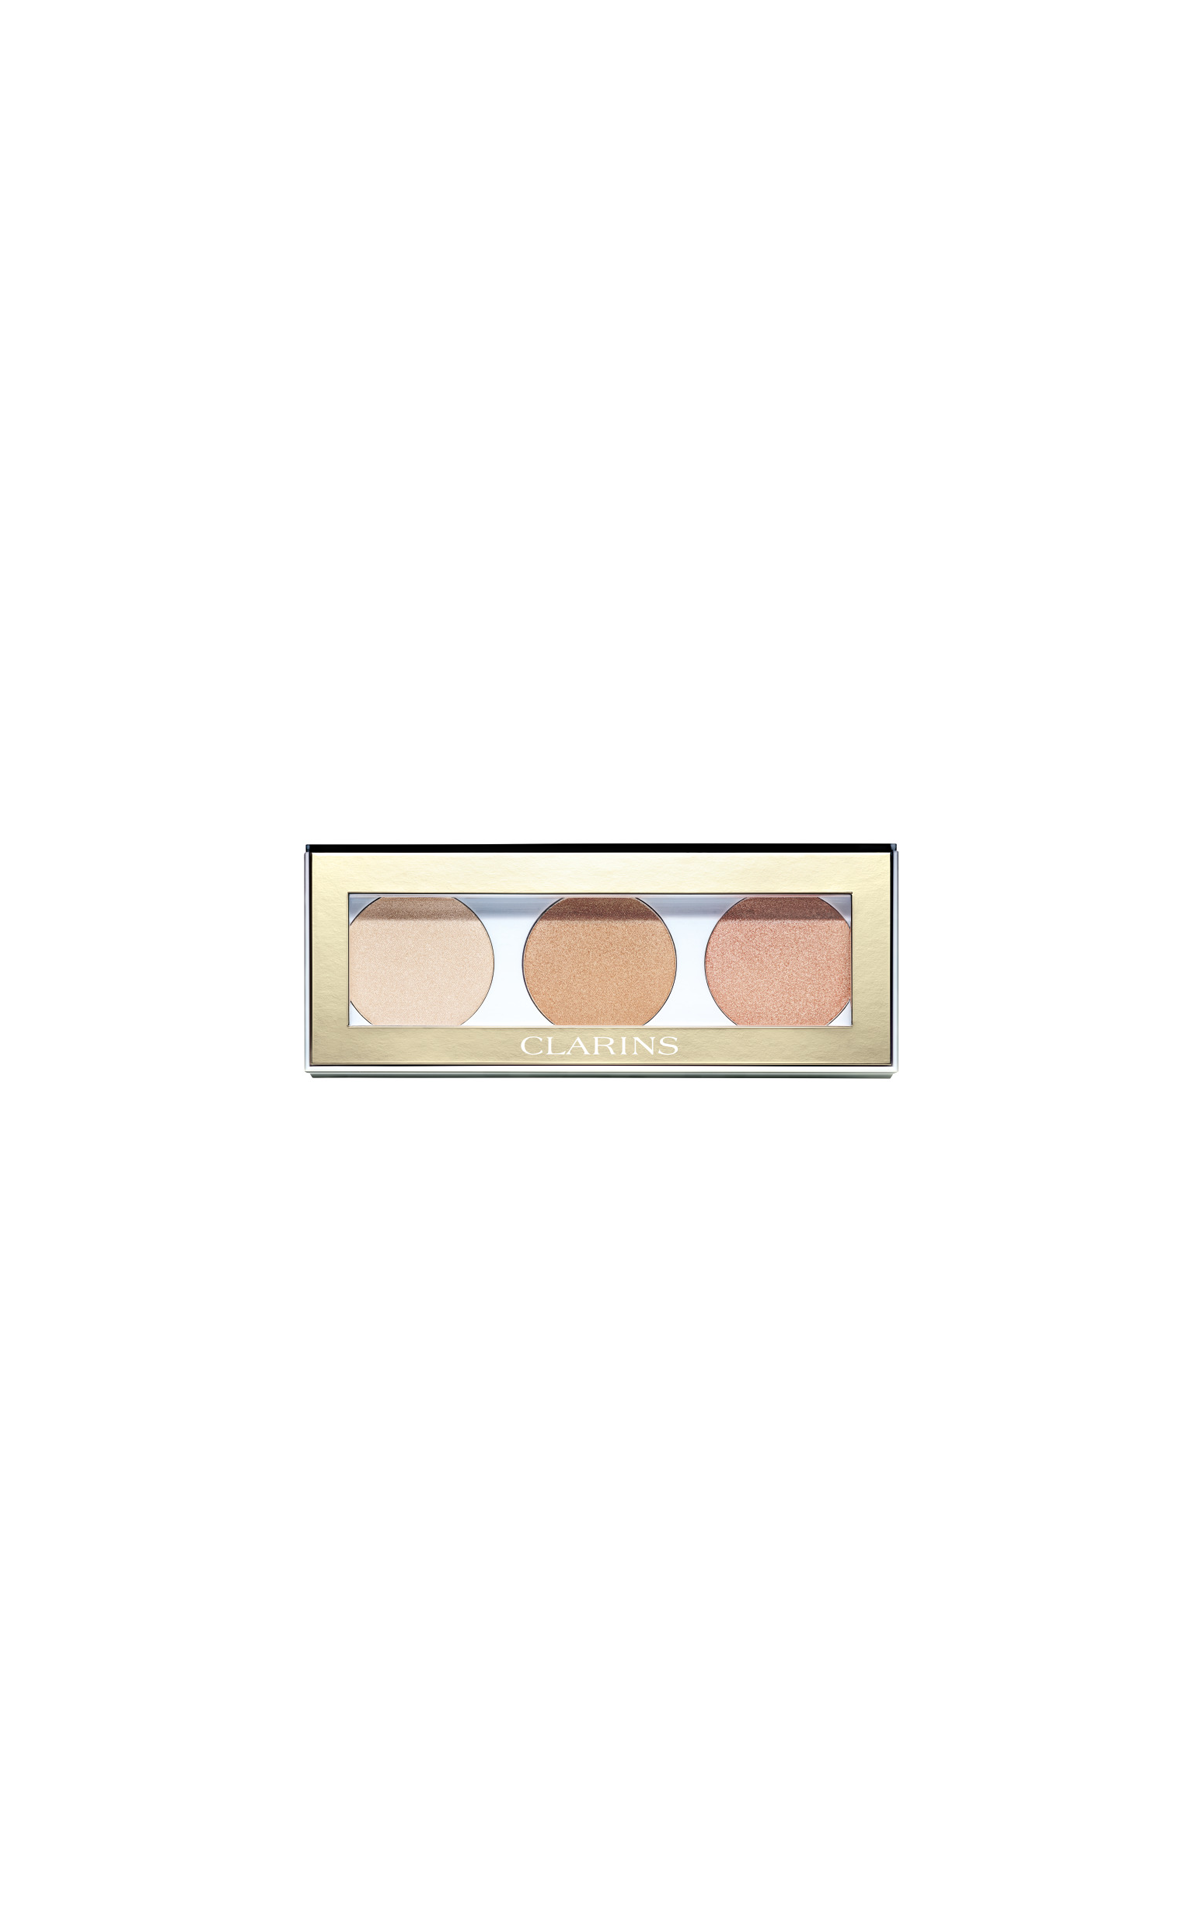 Clarins Highlighter palette | La Vallée Village